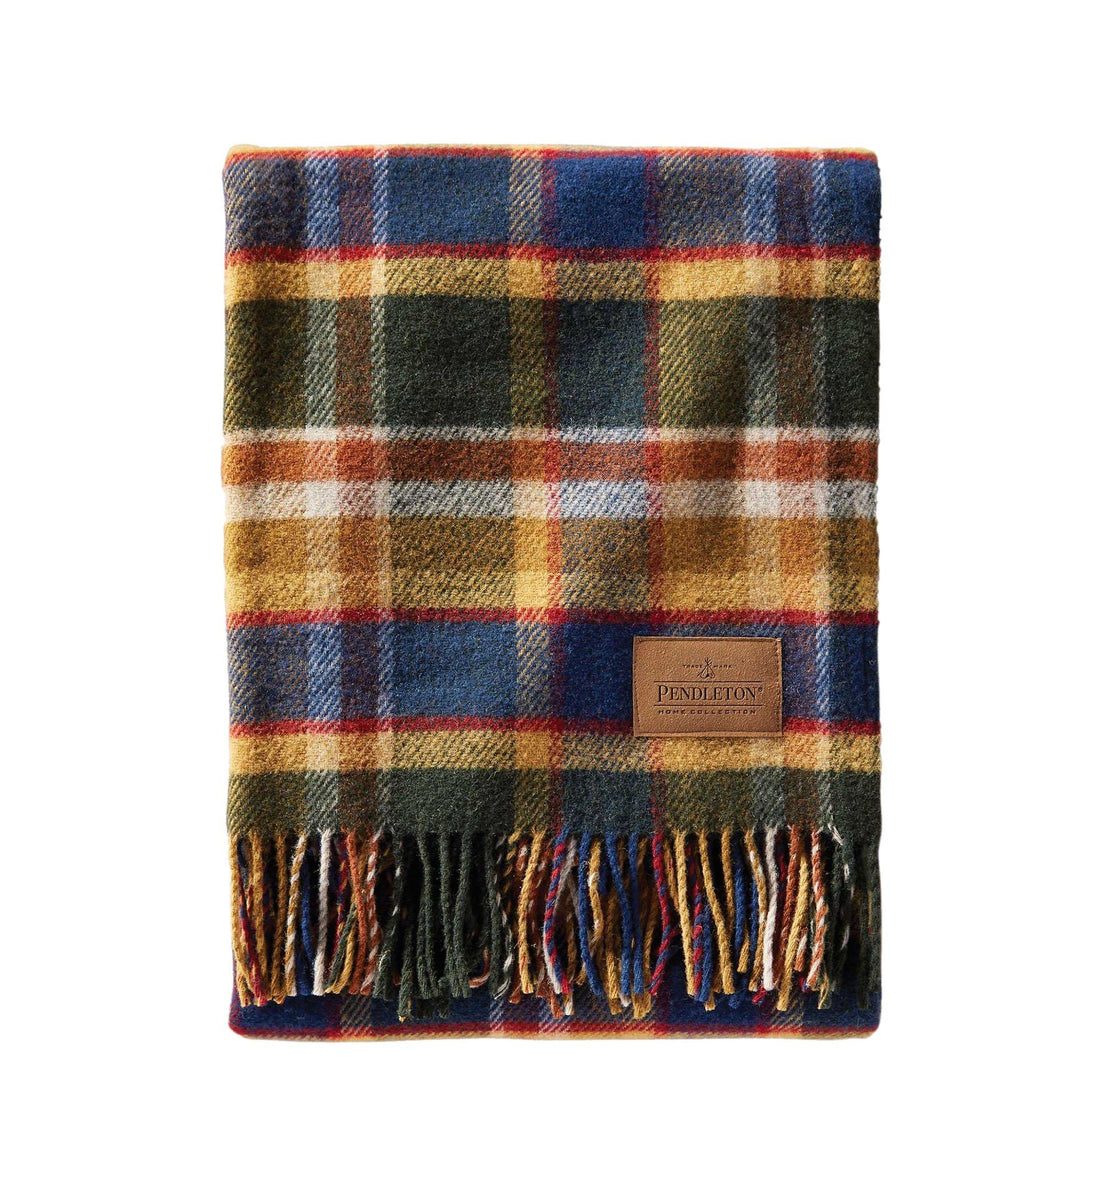 Pendleton Woolen Mills Carry Along Motor Robe Blanket - Badlands - Outdoor Living/Travel - Iron and Resin